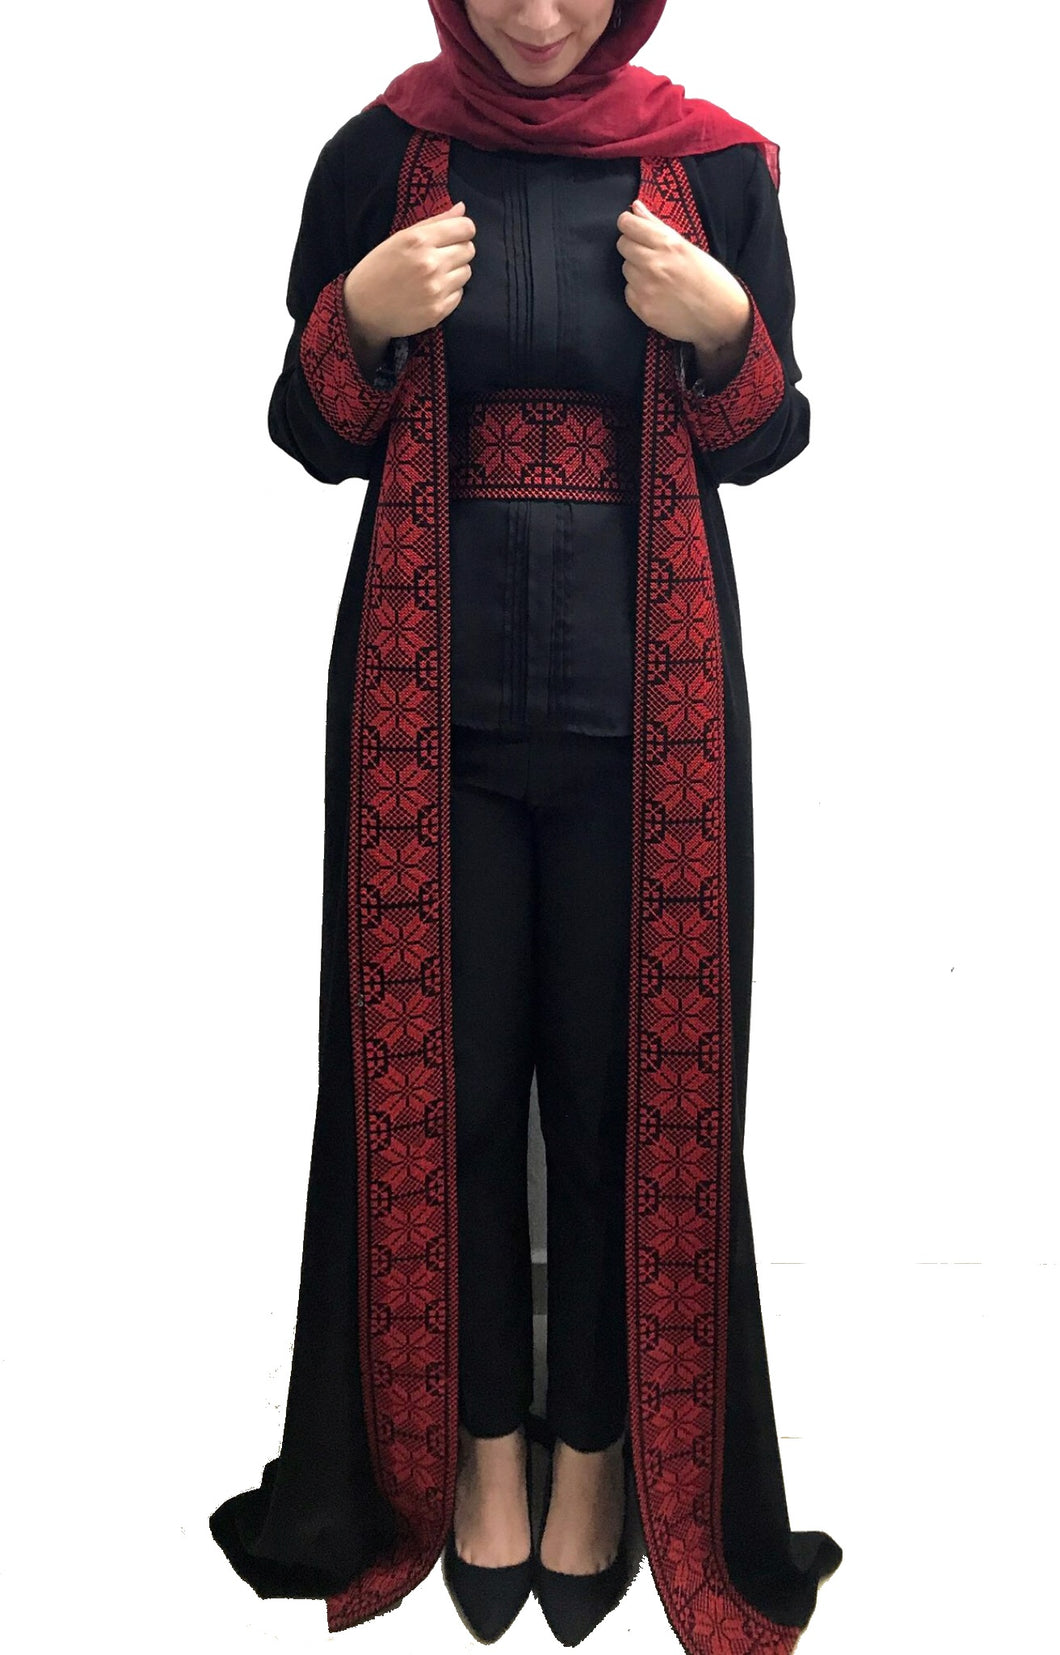 Black embroidered abaya/maxi jacket with stylish red embroidery